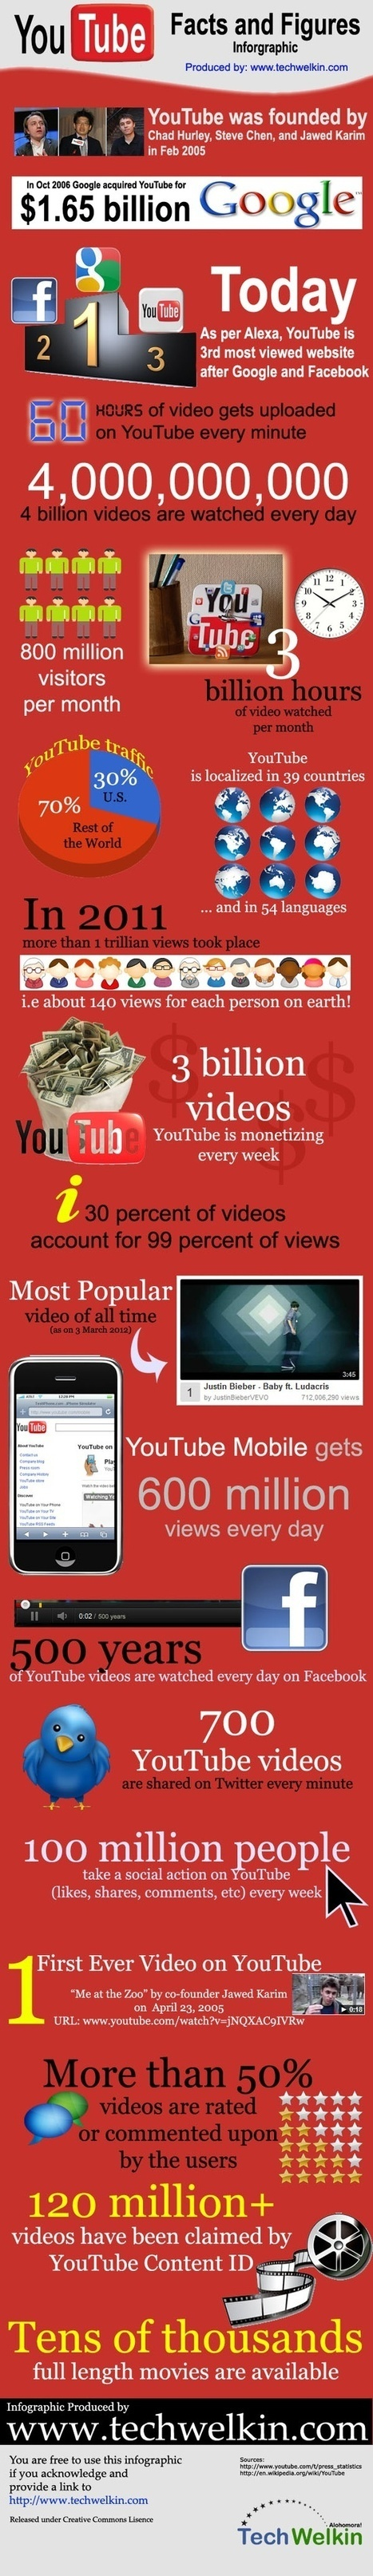 35 Mind Numbing YouTube Facts, Figures and Statistics [Infographic] | nicheprof on social media | Scoop.it